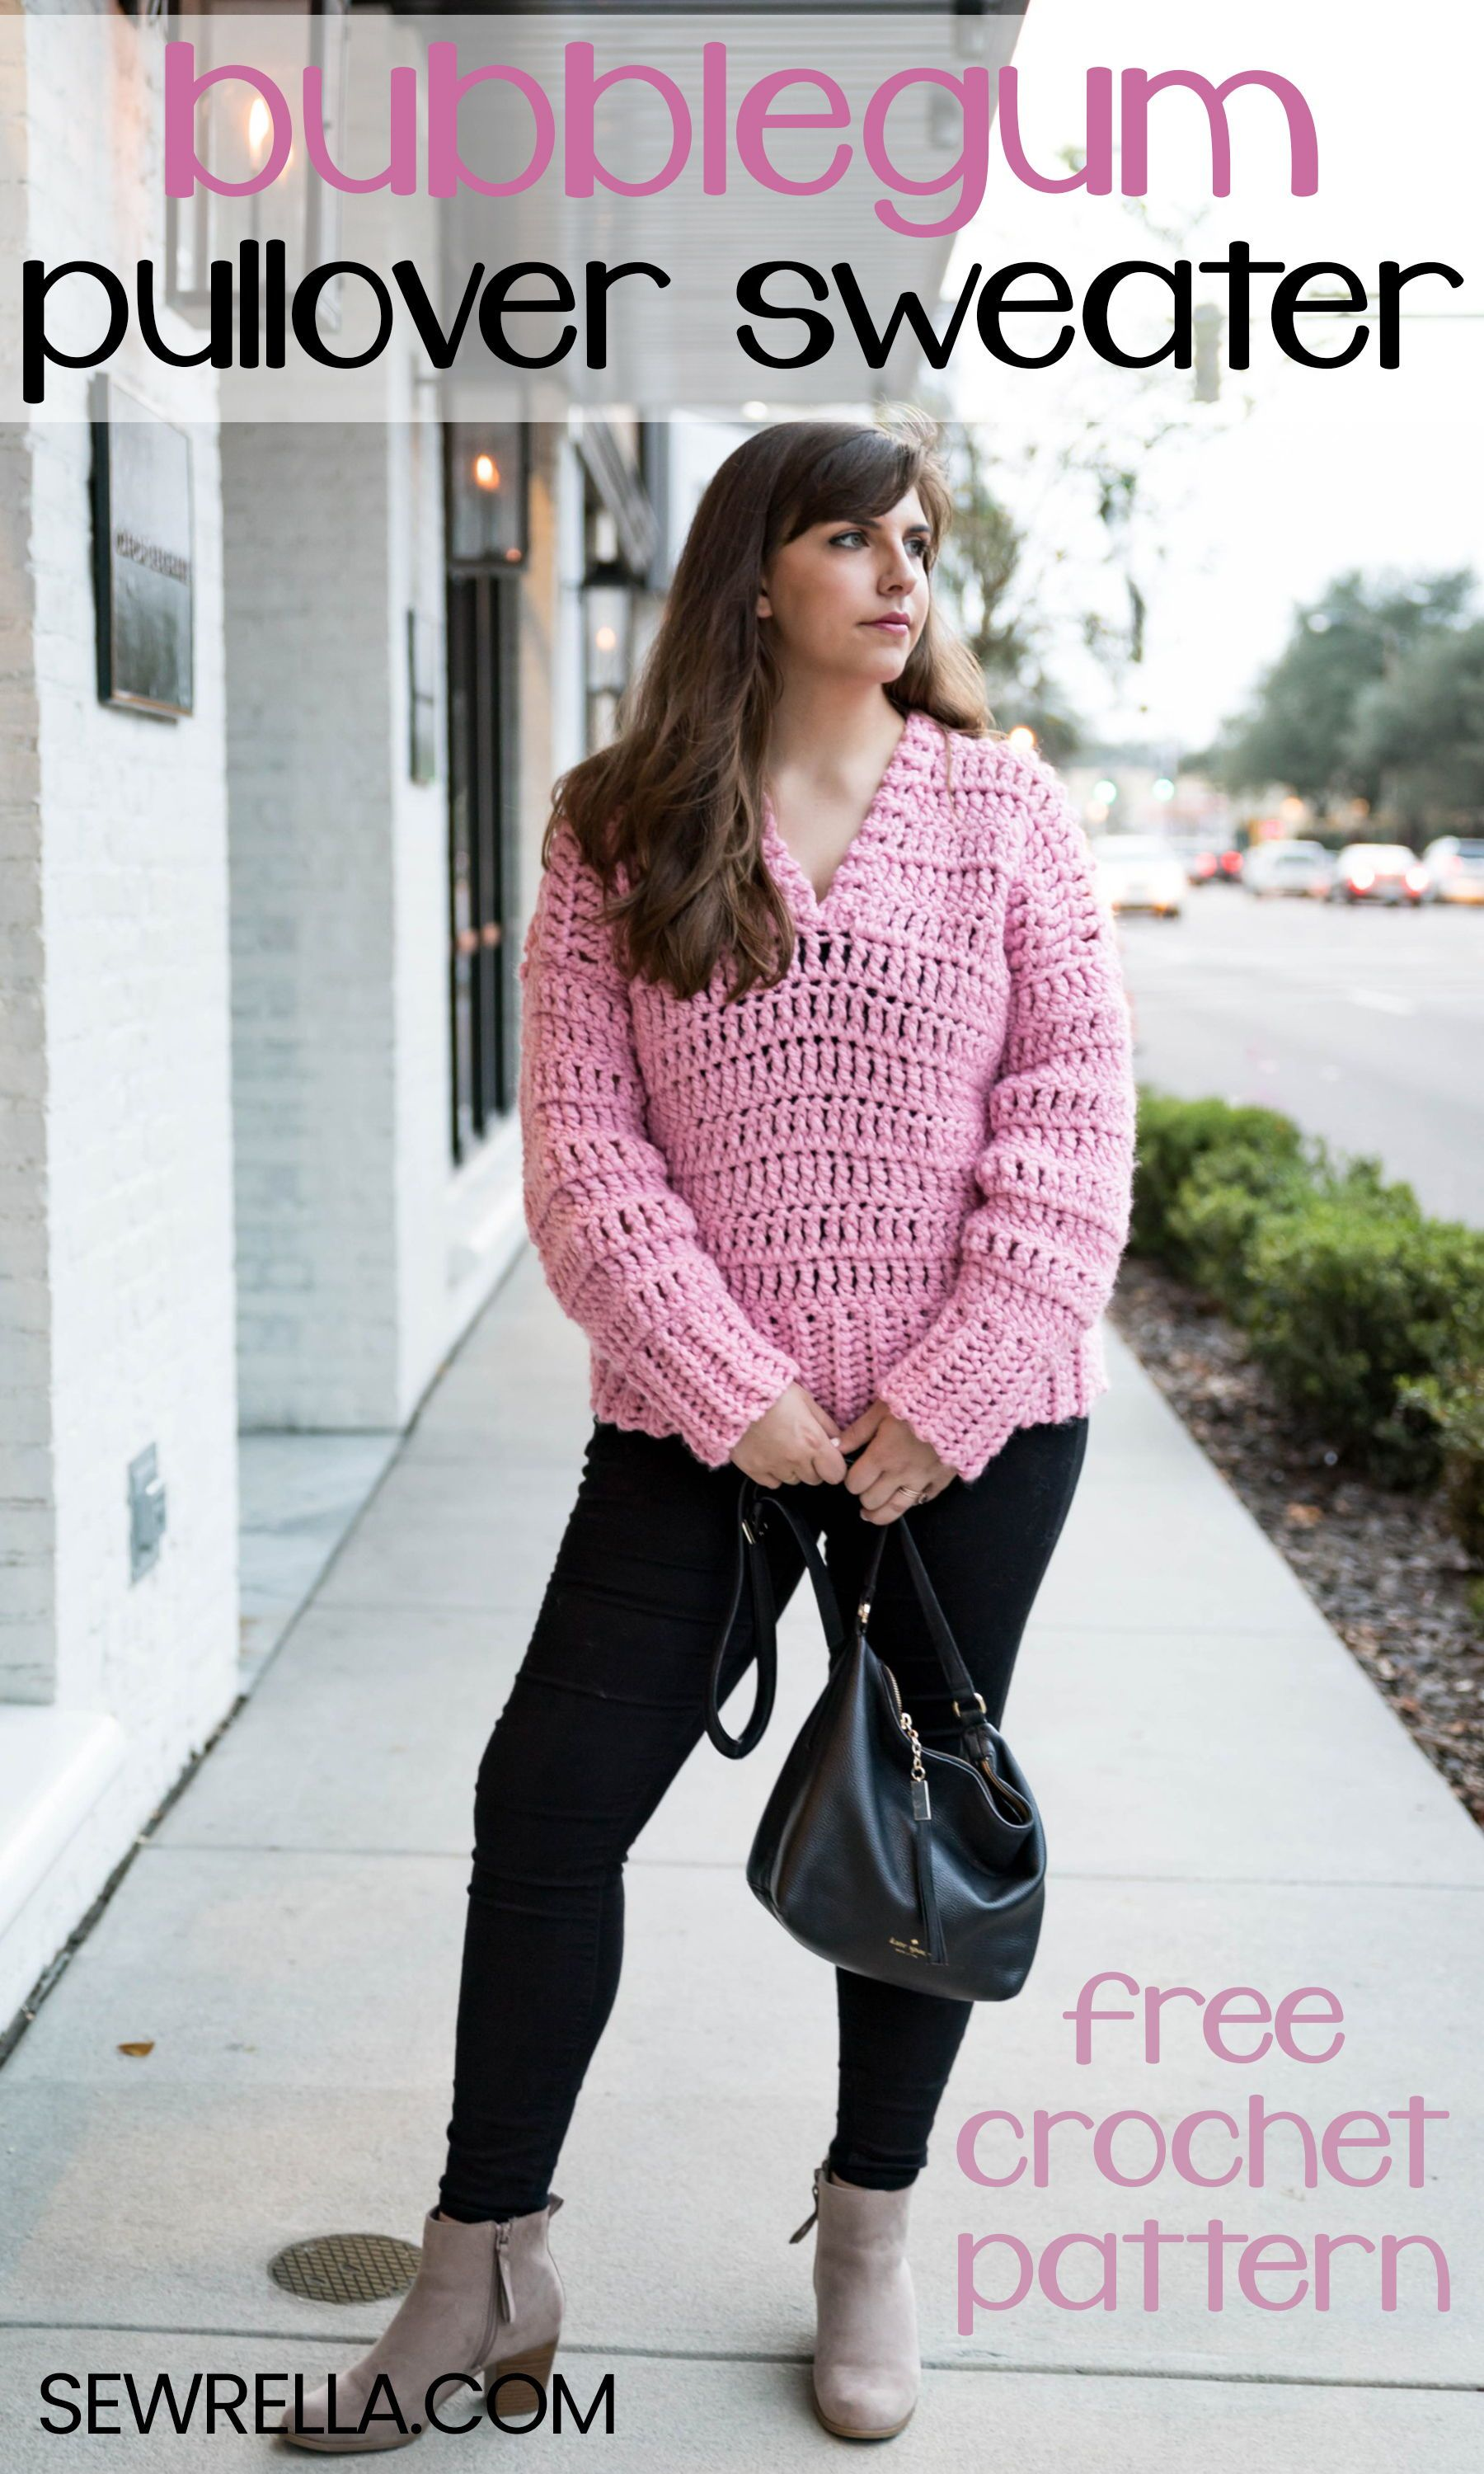 Crochet Bubblegum Pullover Sweater | CrochetHolic - HilariaFina ...